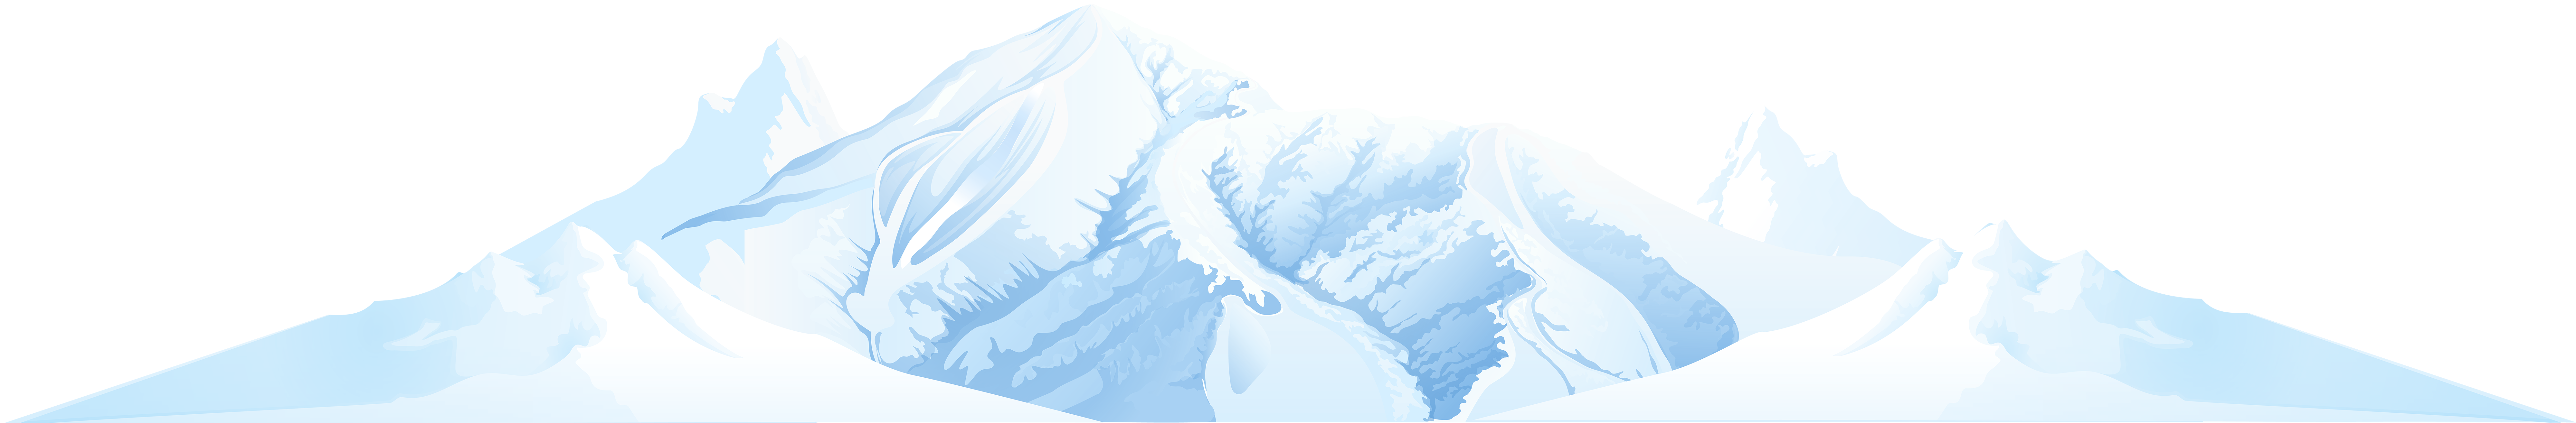 High clipart mountain slope. Winter transparent png clip